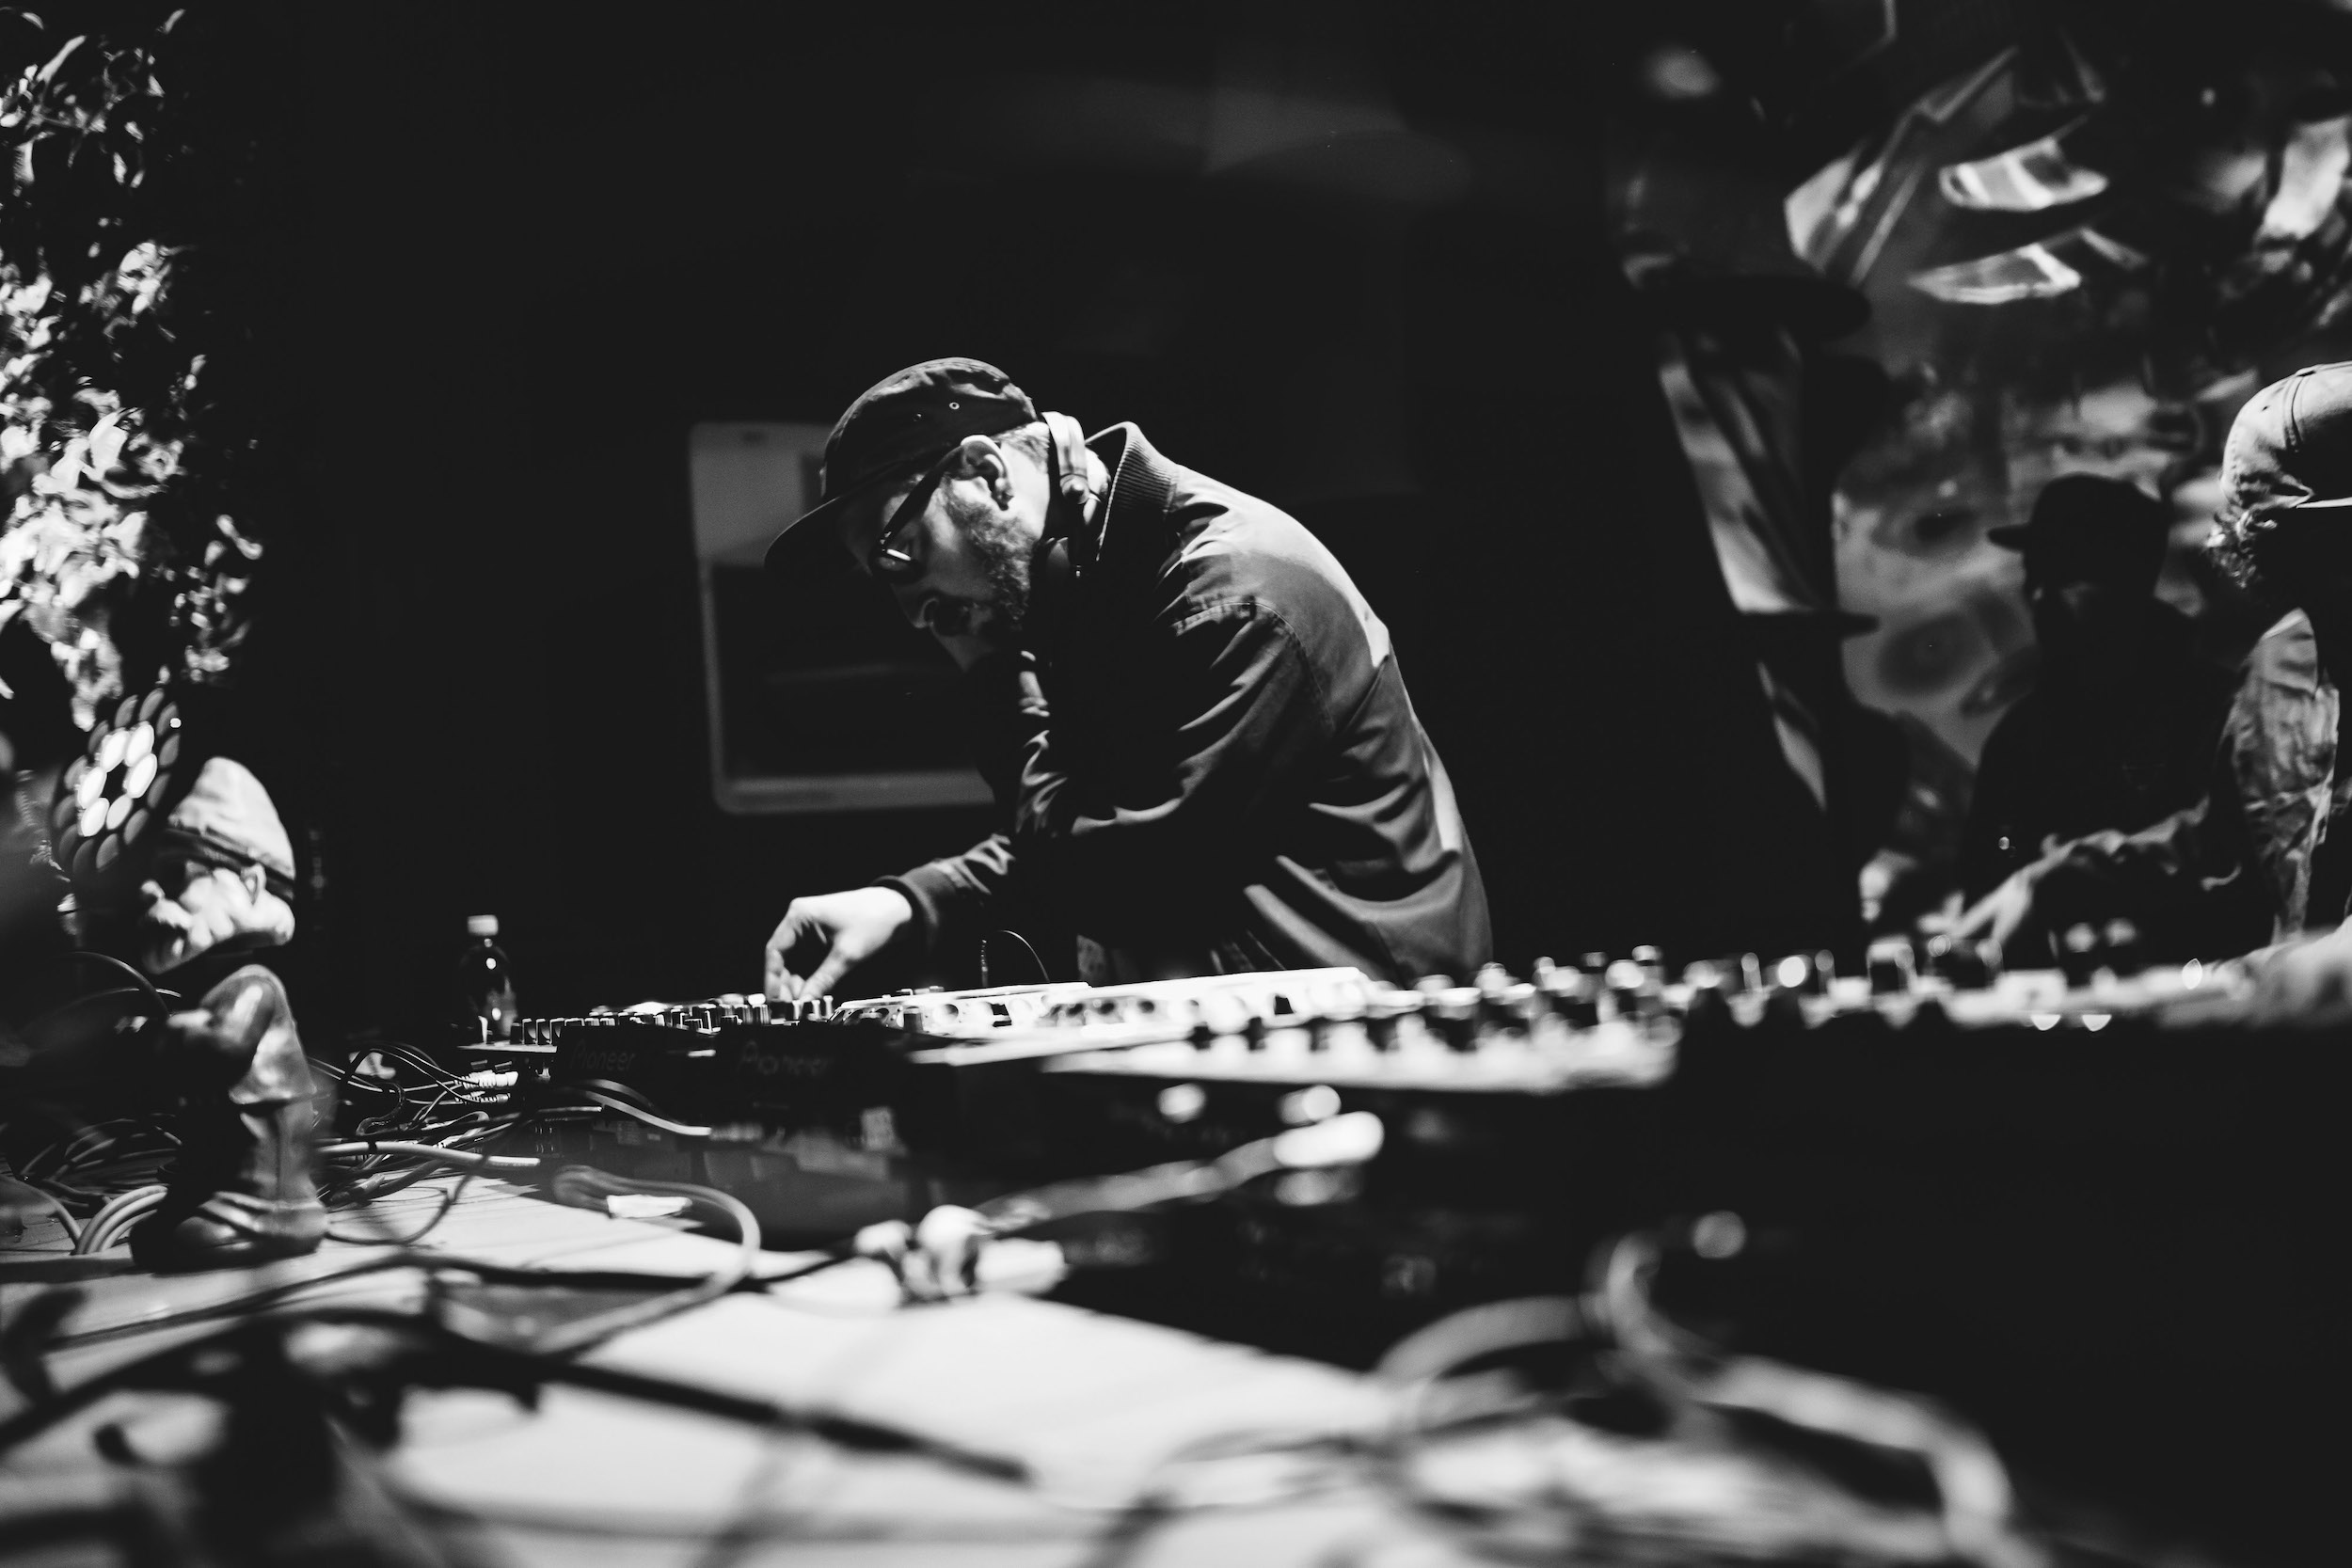 Synkro Makes Us a Mix Featuring dBridge, Susuma Yokota and More